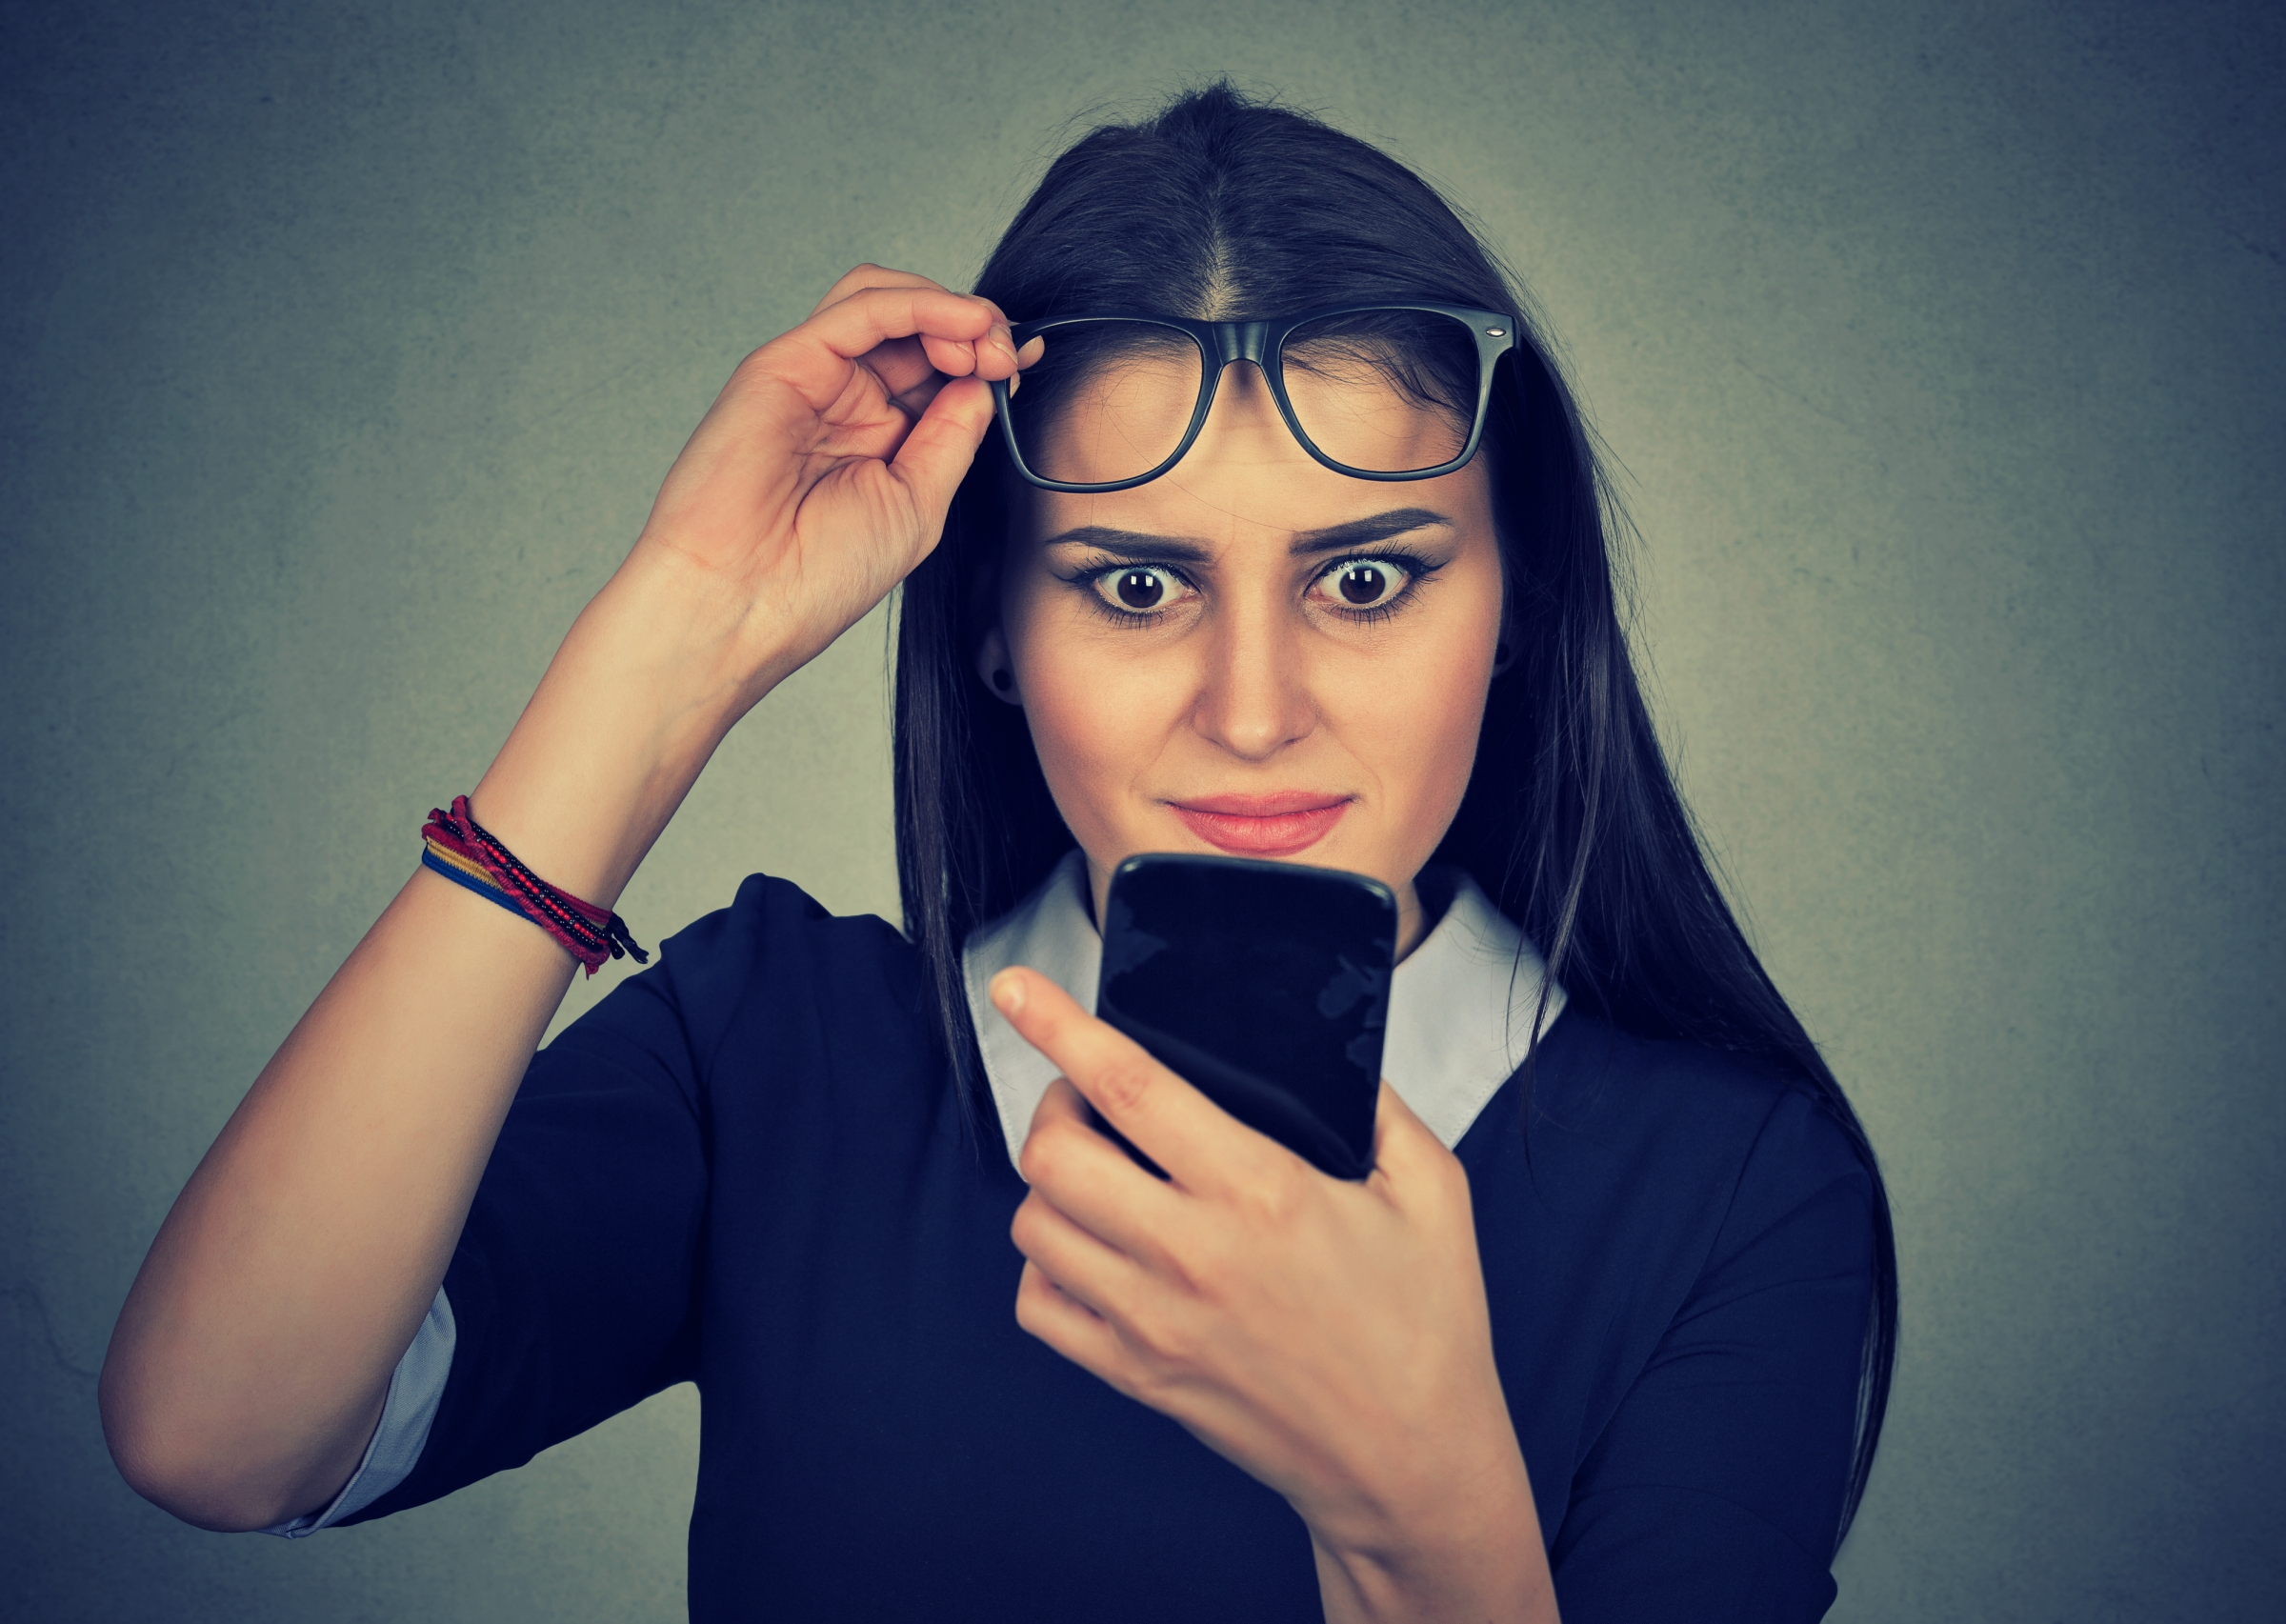 Confused woman looking at mobile